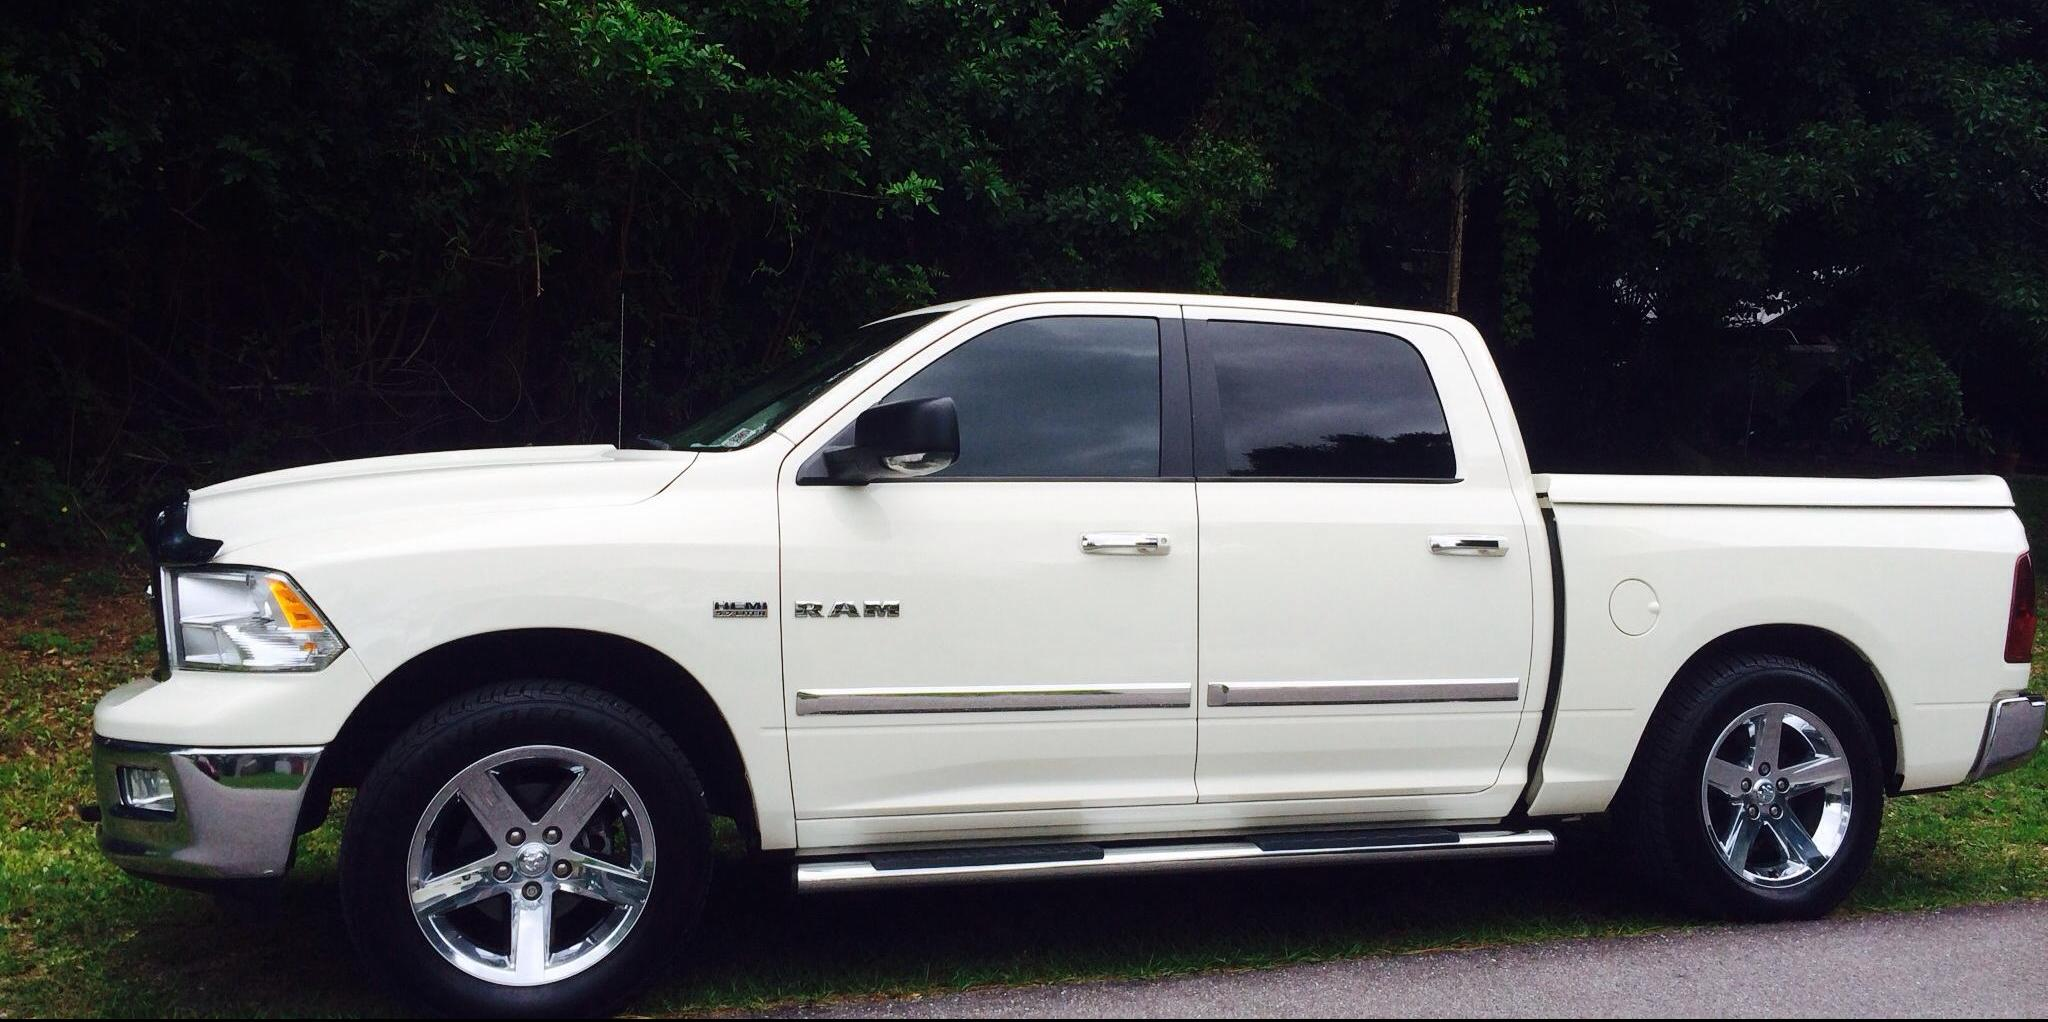 Bowmanch's 2010 Dodge Ram-1500-Crew-Cab